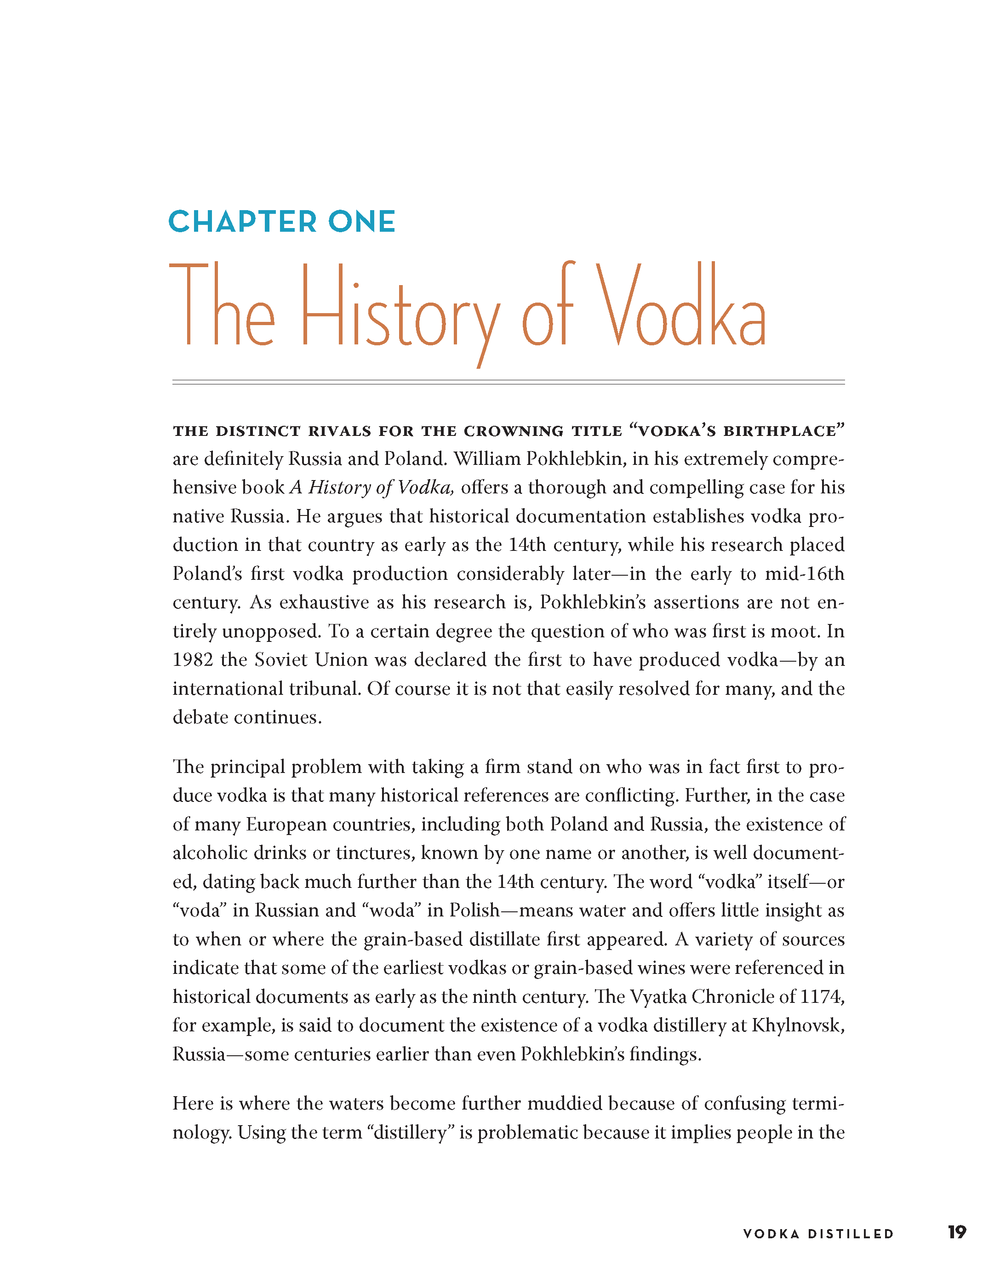 Vodka Distilled_Page_09.png